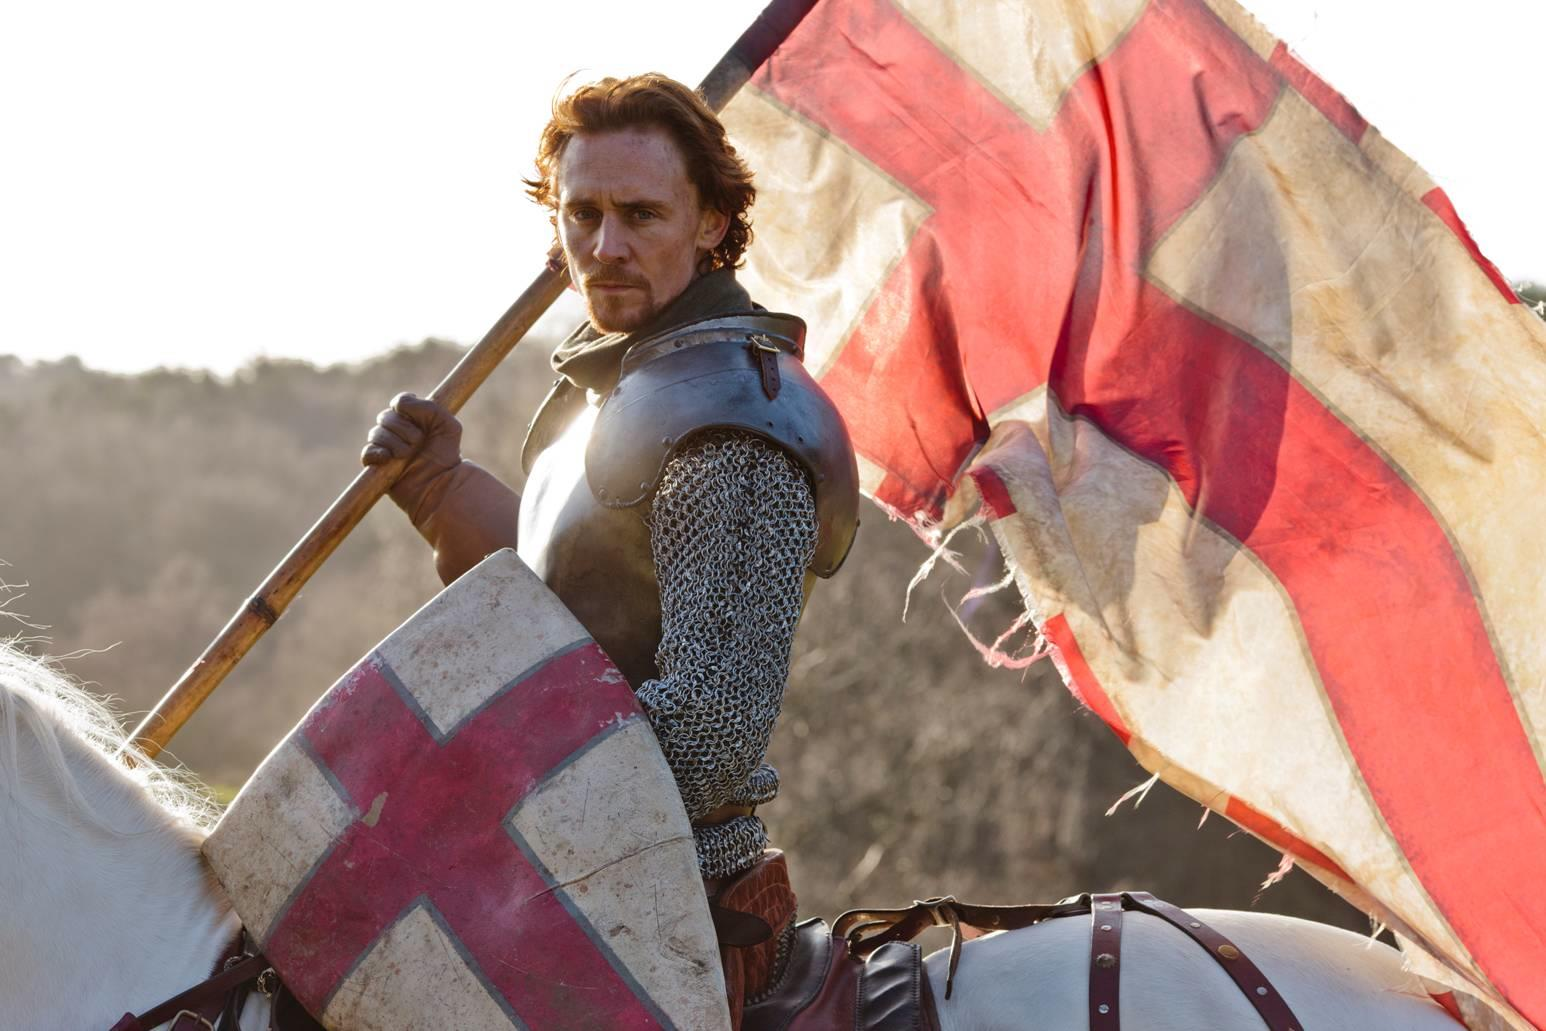 henry v movie to play comparison essay Shakespeares play othello vs nelsons film o english literature essay print changed to odin getting the mvp are teenagers and movie are the most.